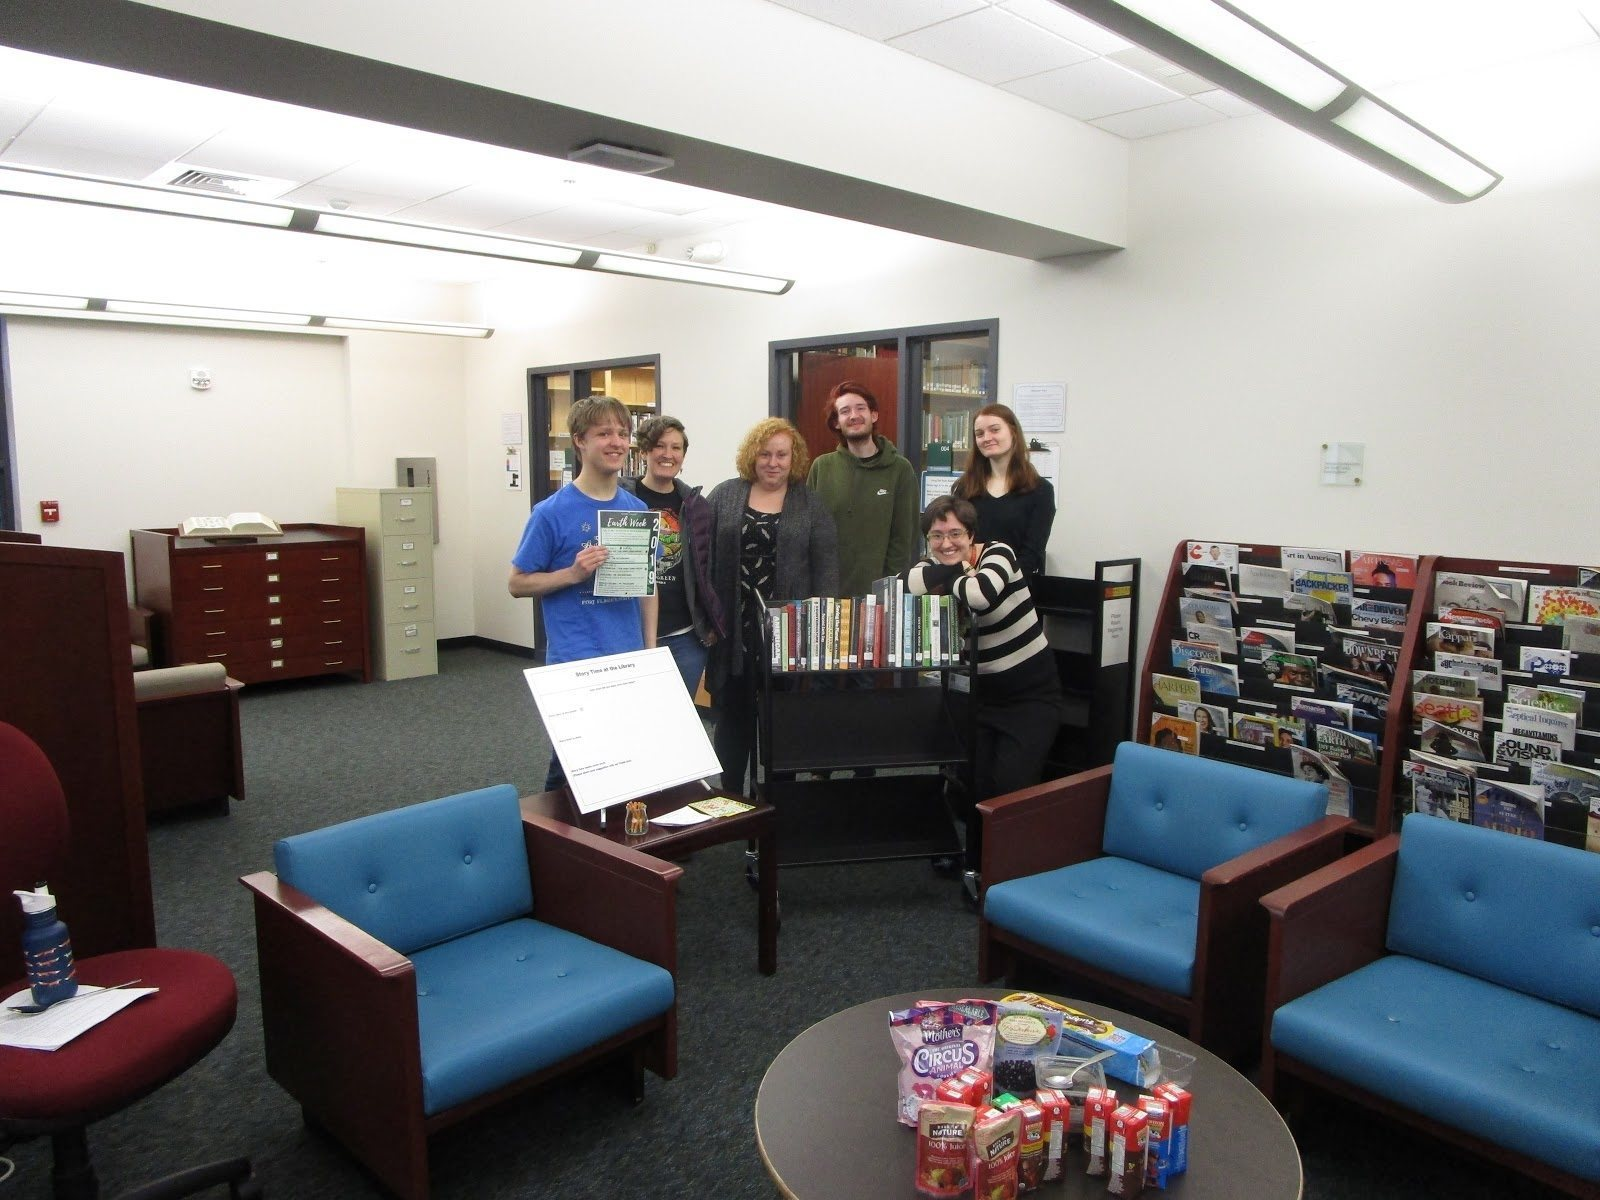 Librarians and Attendees to Story-Time Next to Book Cart - Library Story-Time: The Sound Machine - (Source - Caleb Lizon)